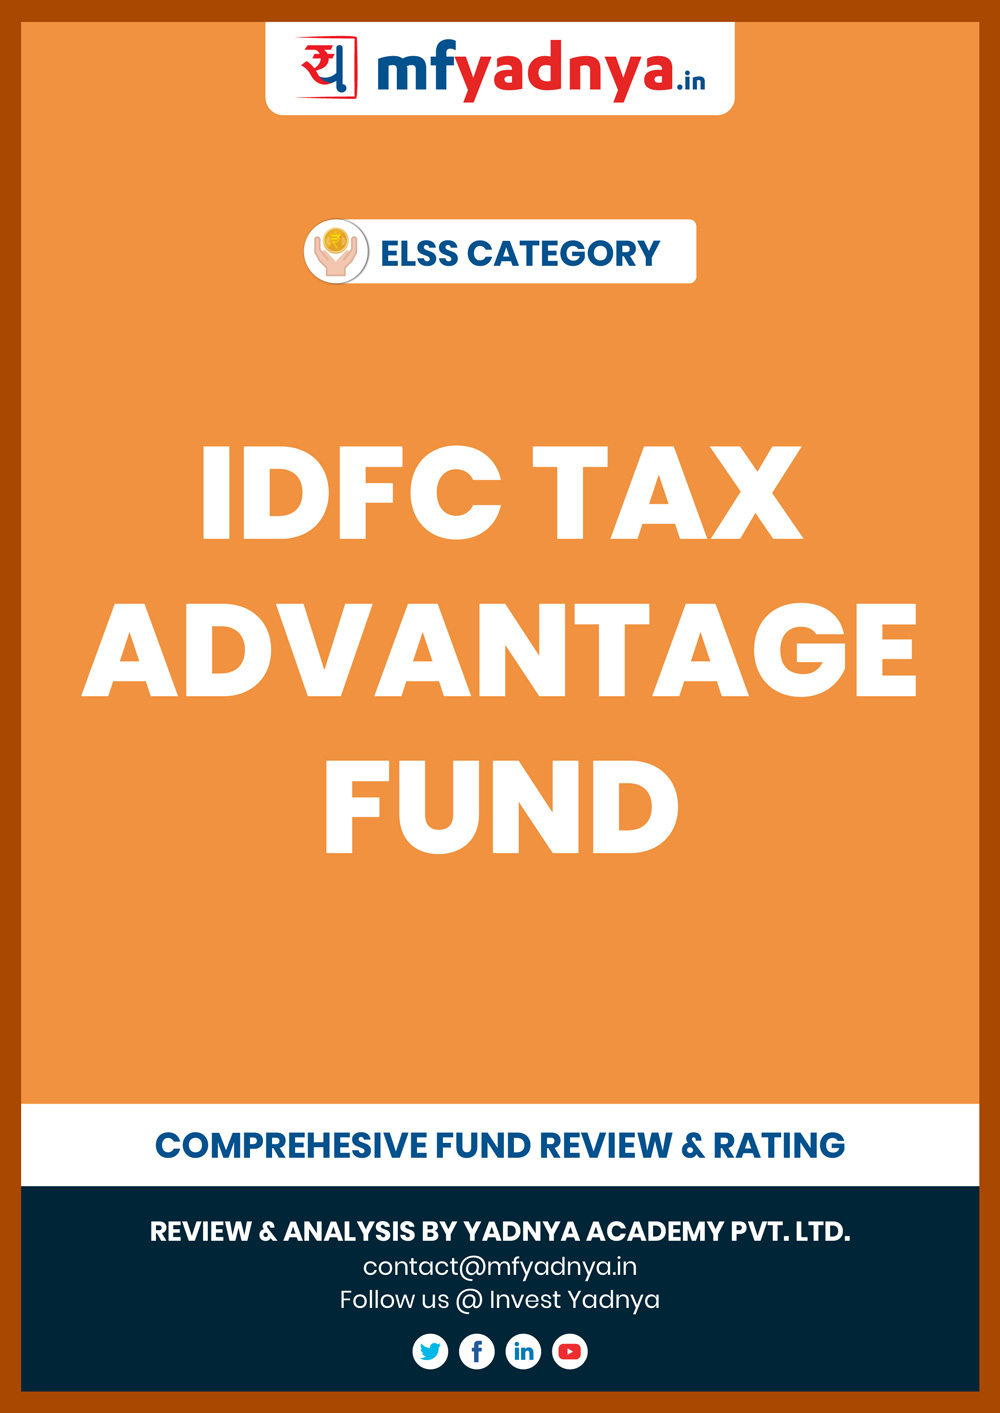 ELSS (Tax Saver) Category - IDFC Tax Advantage Fund Detailed Analysis & Review based on July 31st, 2019 data. Most Comprehensive and detailed review based on Yadnya's proprietary methodology of Green, Yellow & Red Star.